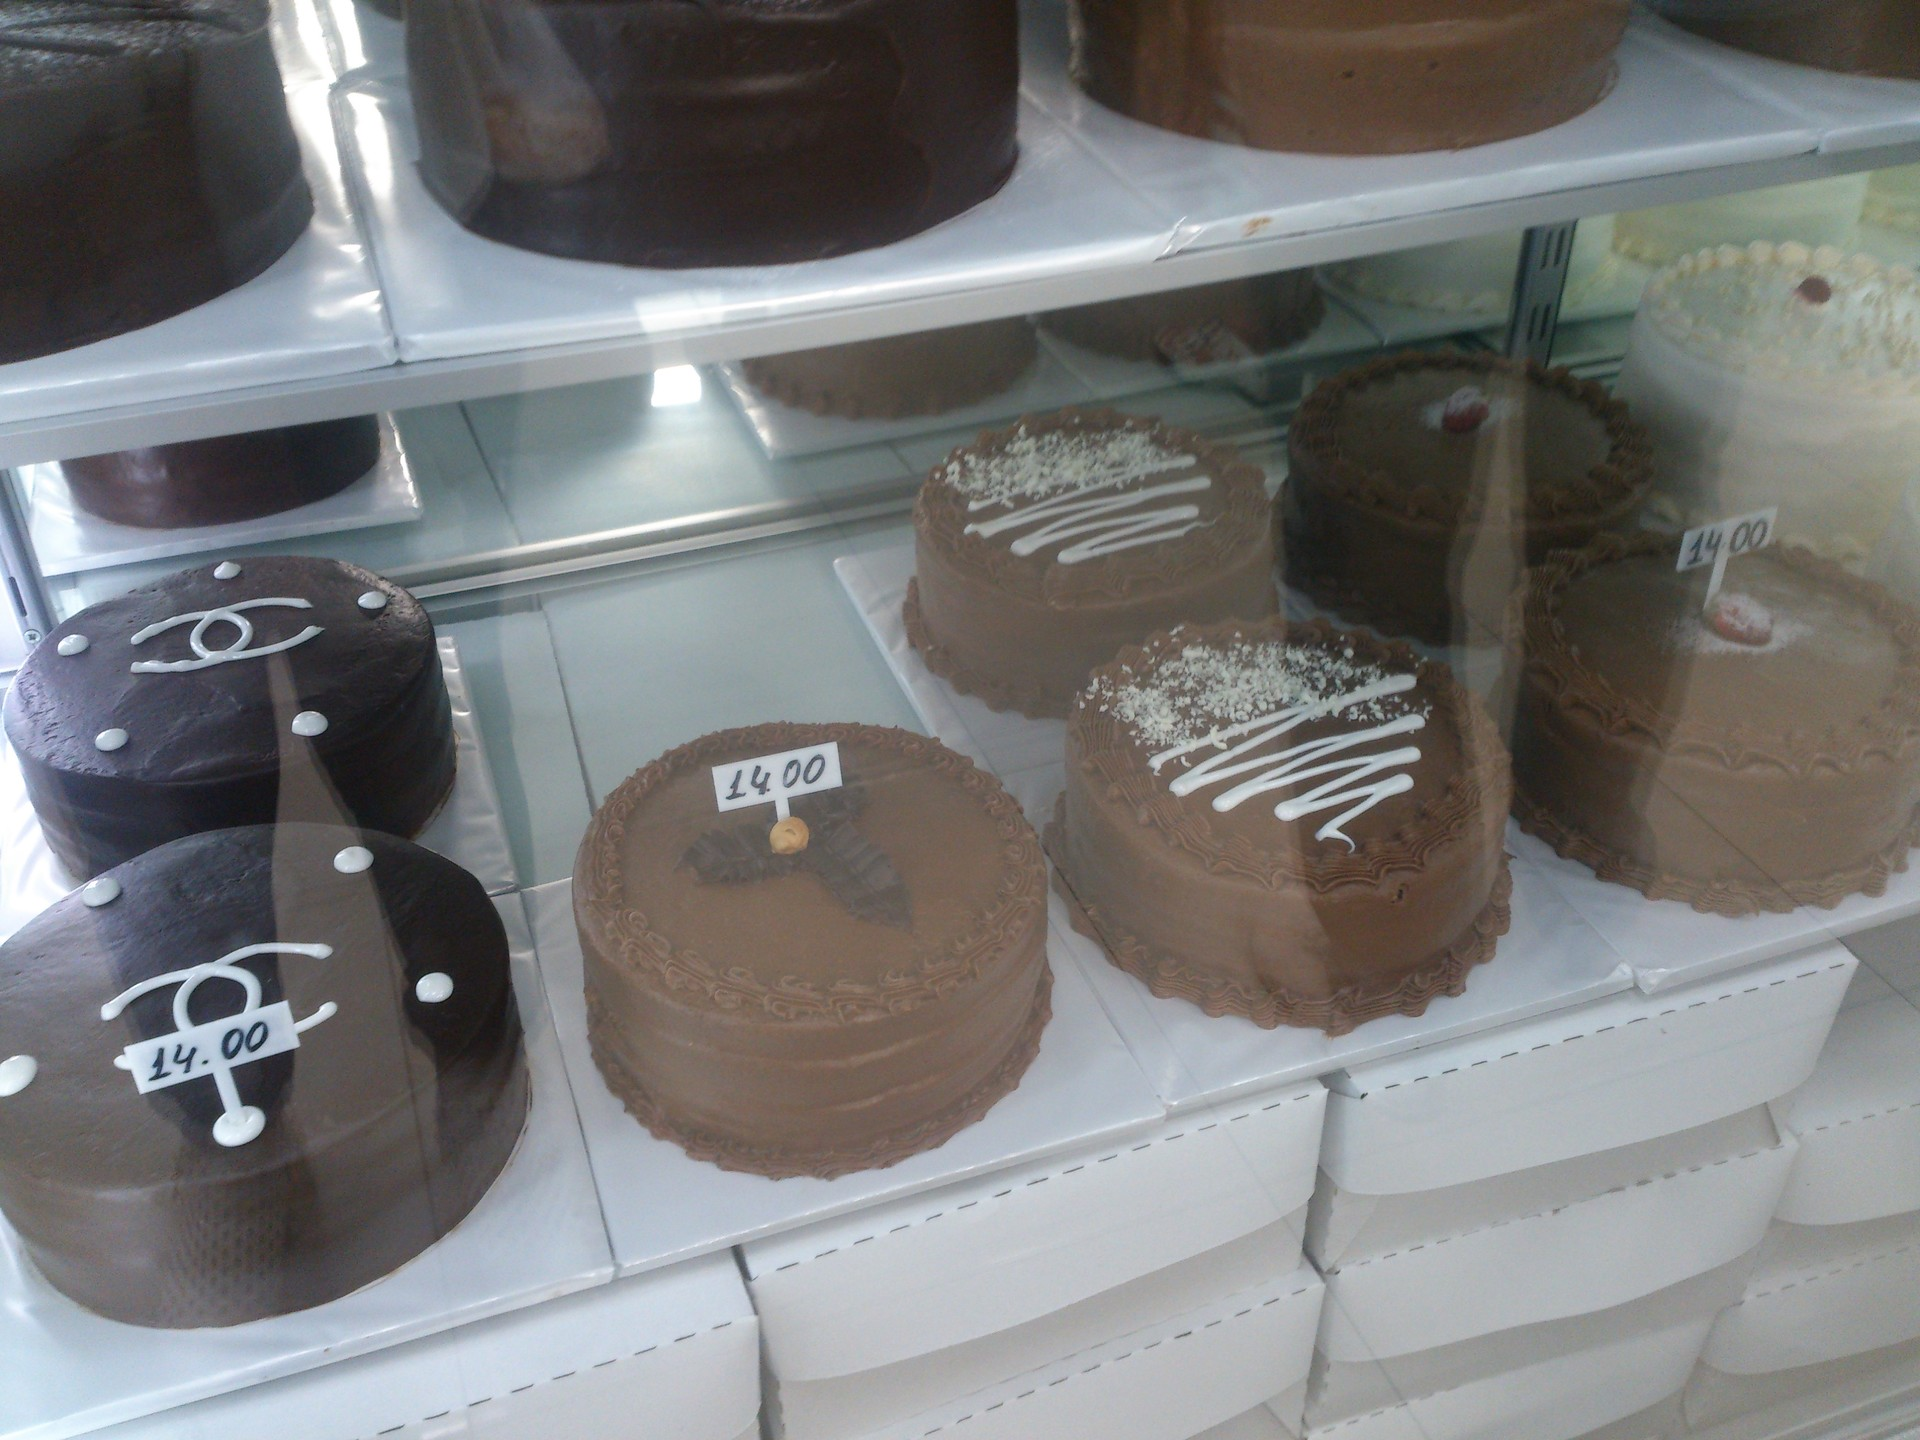 cakes-tbilisi-f1340856610930df64843d25bf